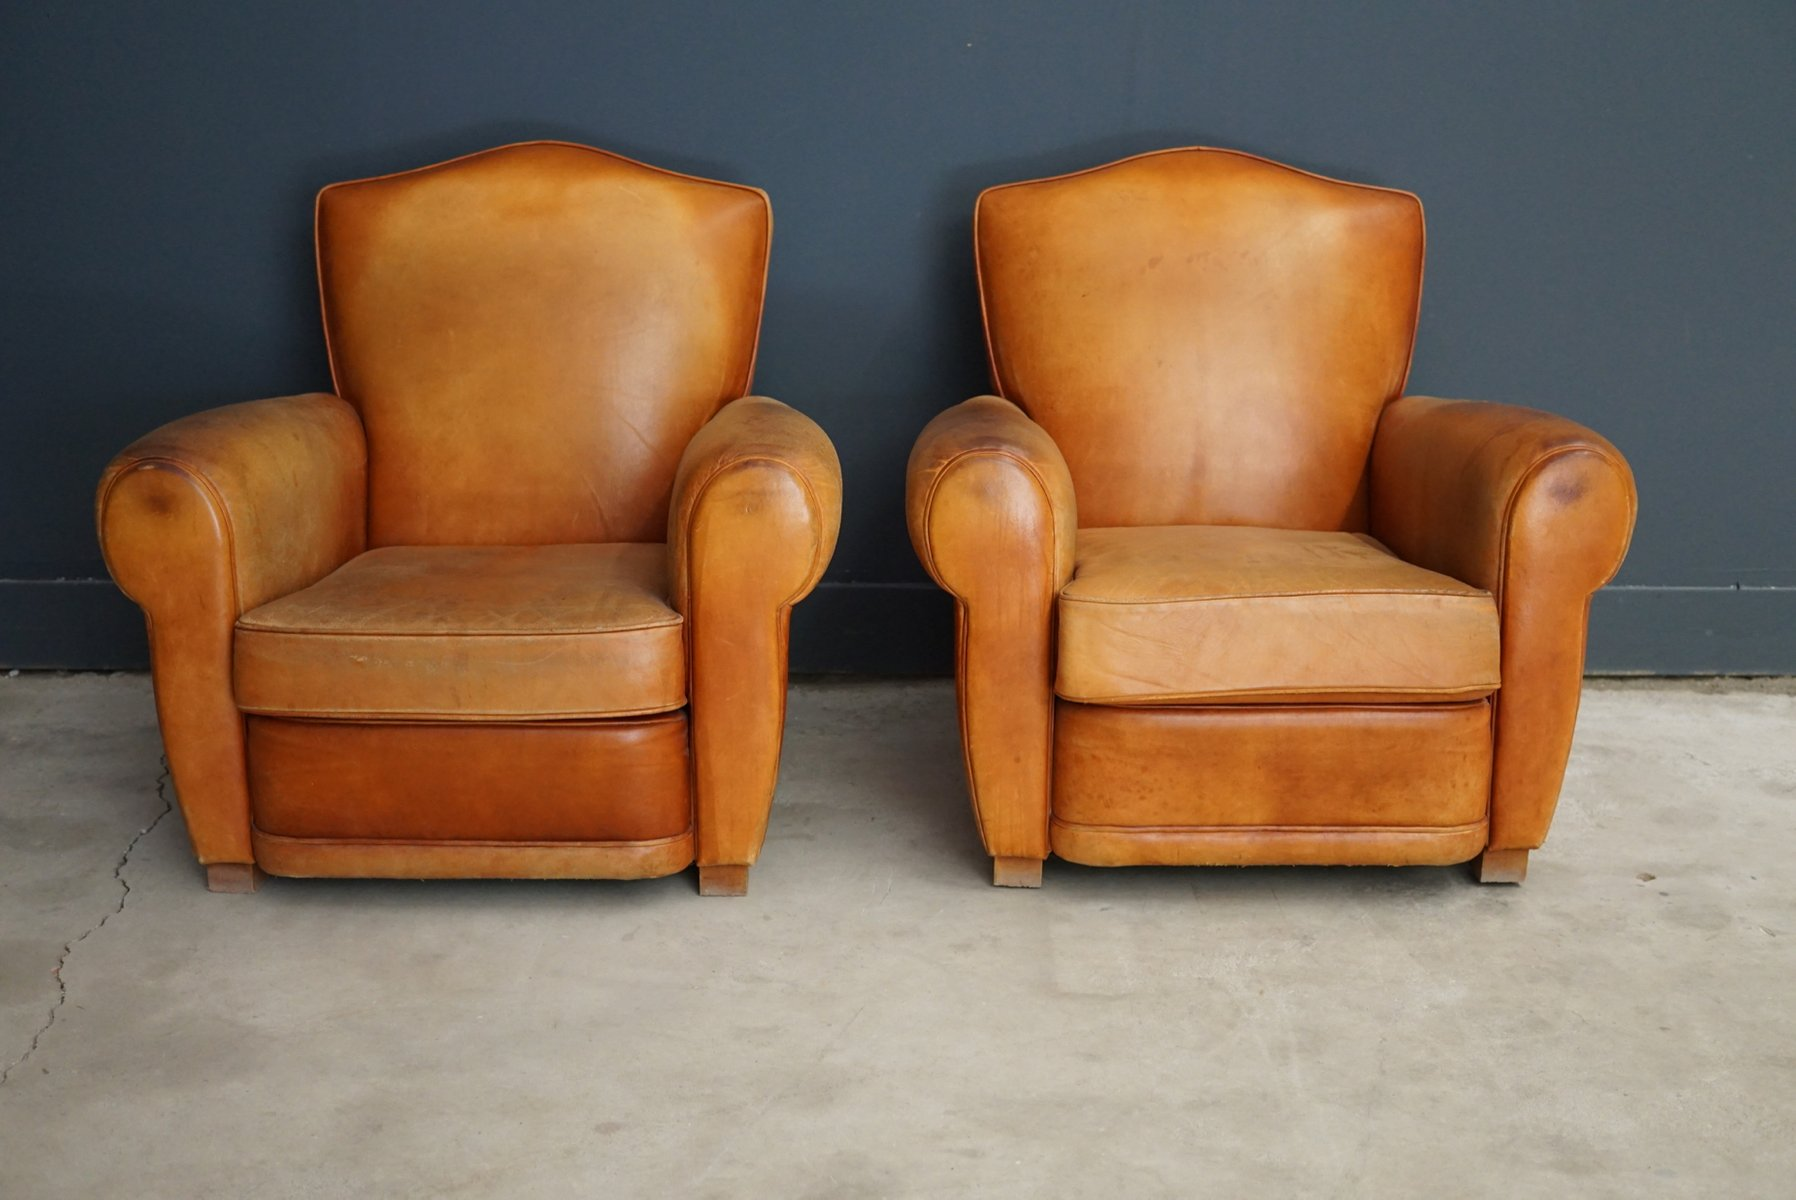 Vintage French Leather Club Chairs 1950s Set of 2 for sale at Pamono